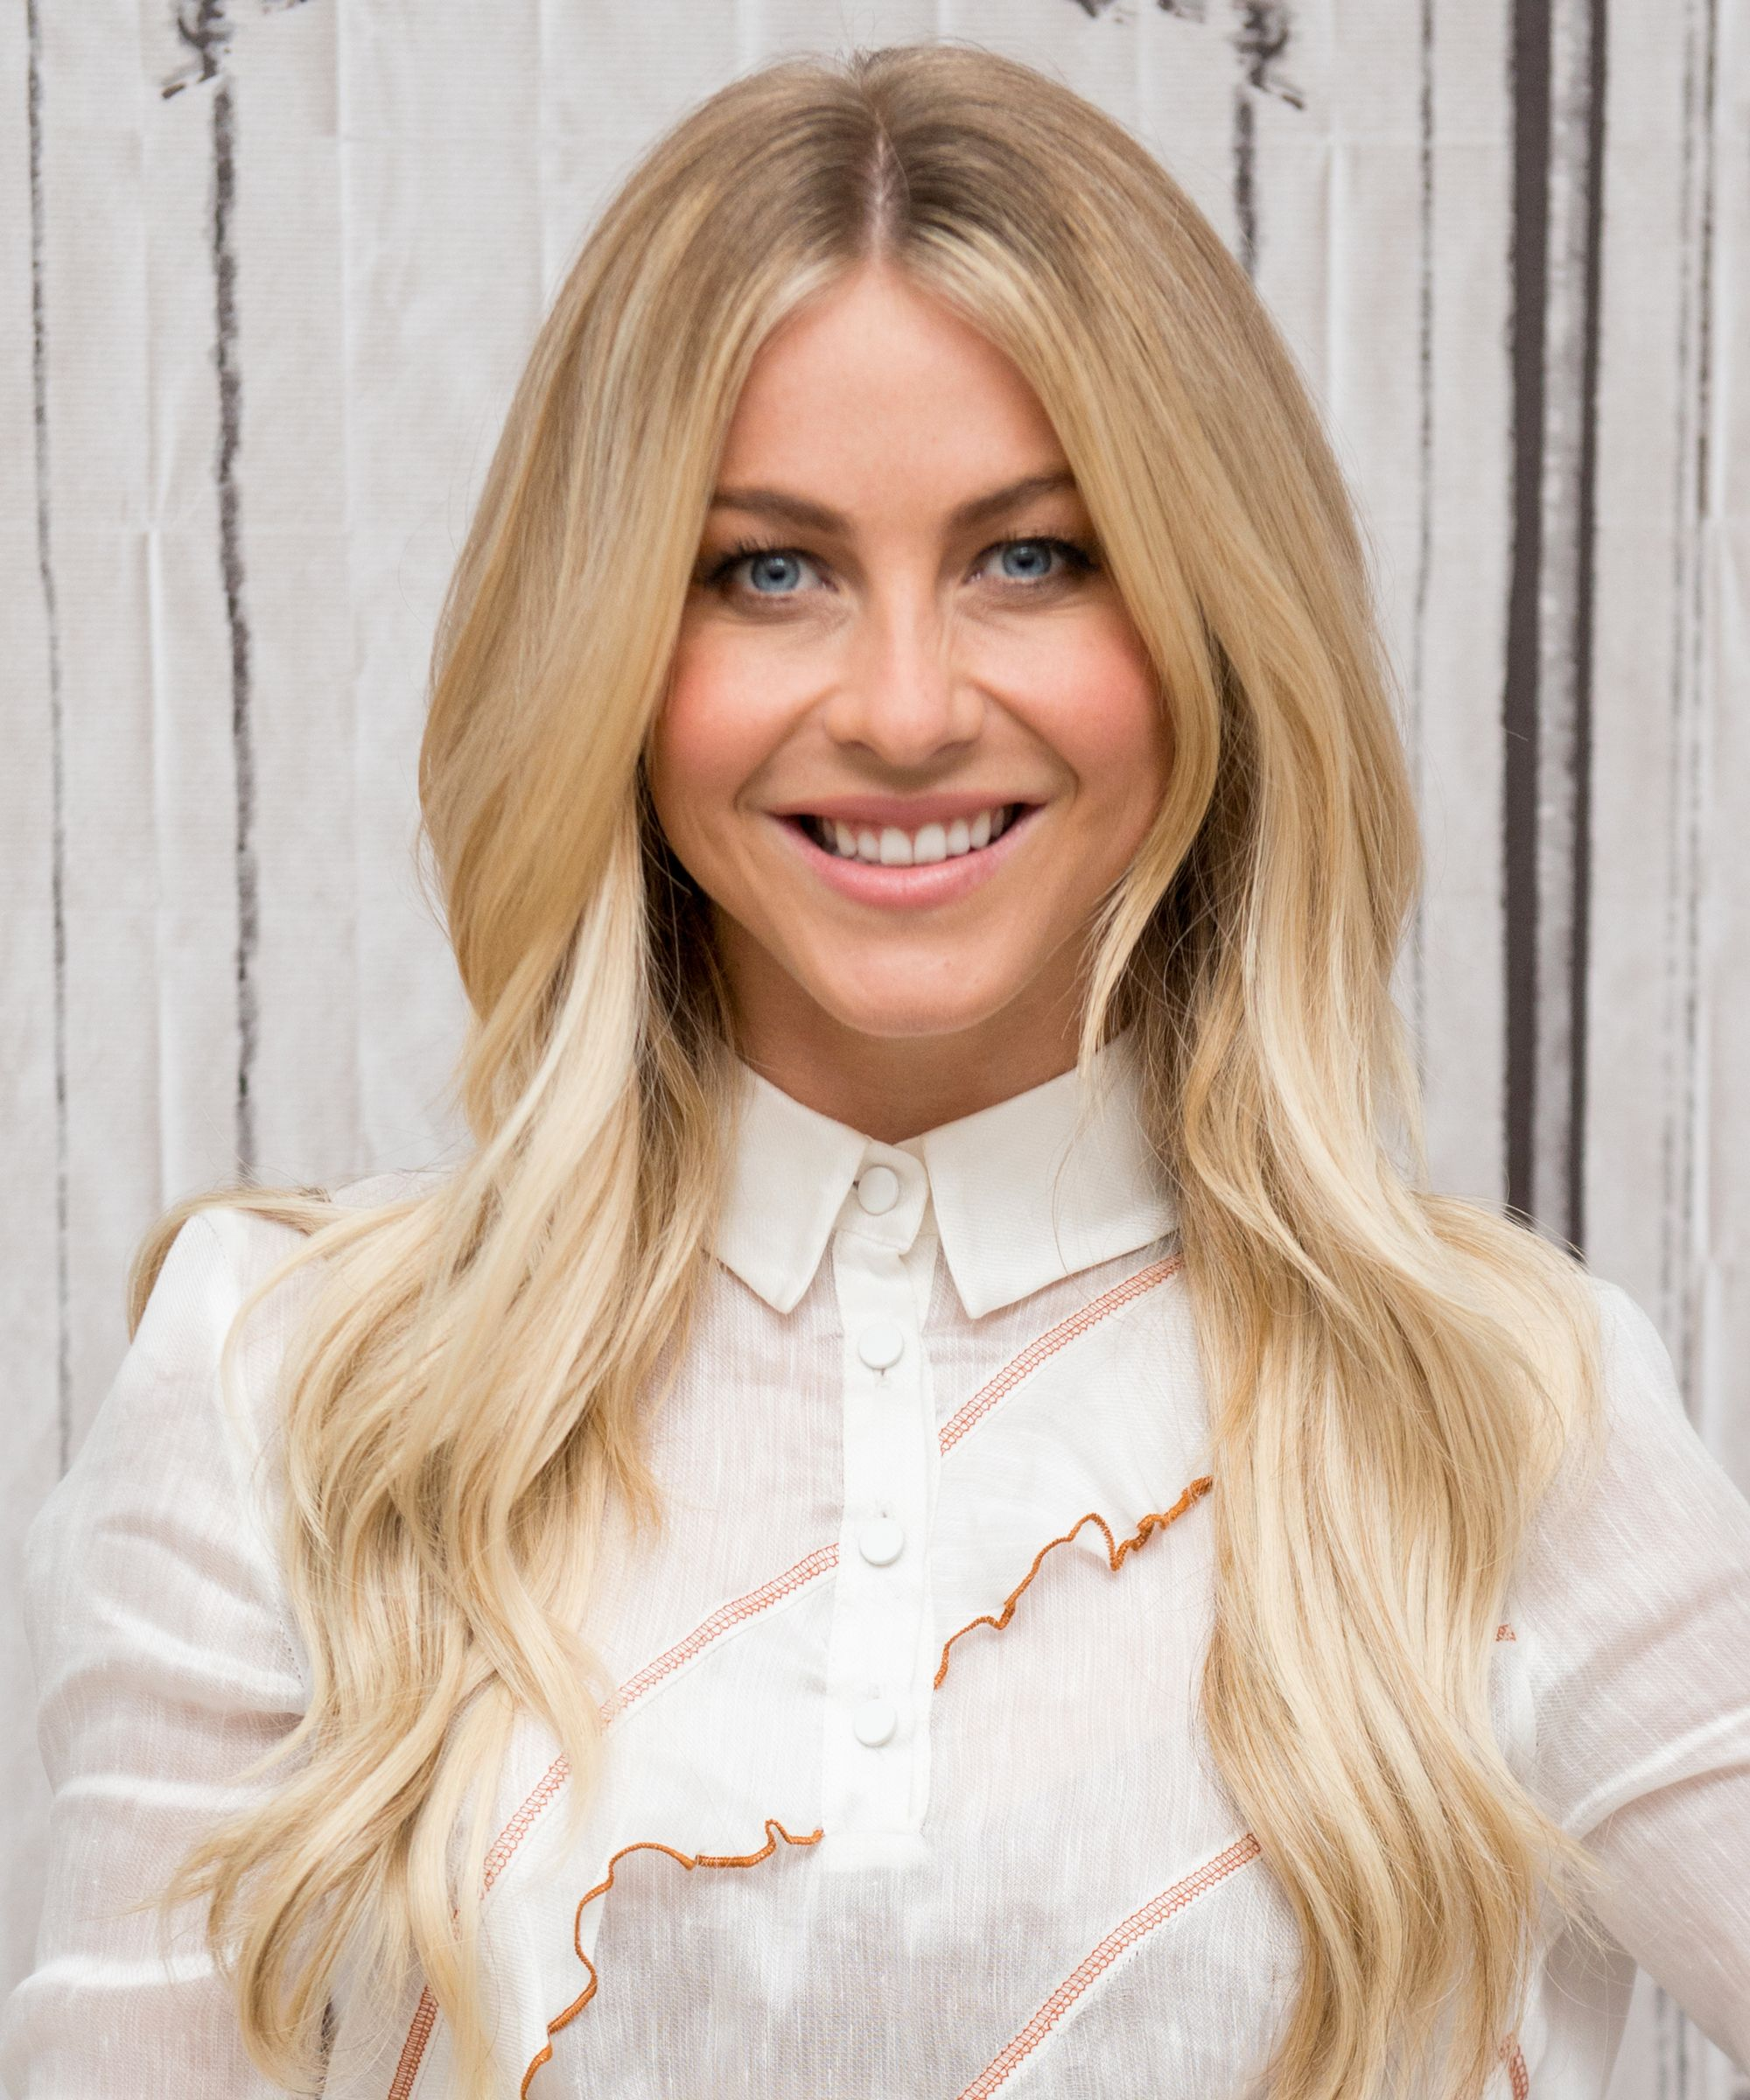 Julianne hough has a diy beauty secret for incredible hair this easy diy hair mask only has two ingredients and gave julianne hough incredible hair baditri Choice Image